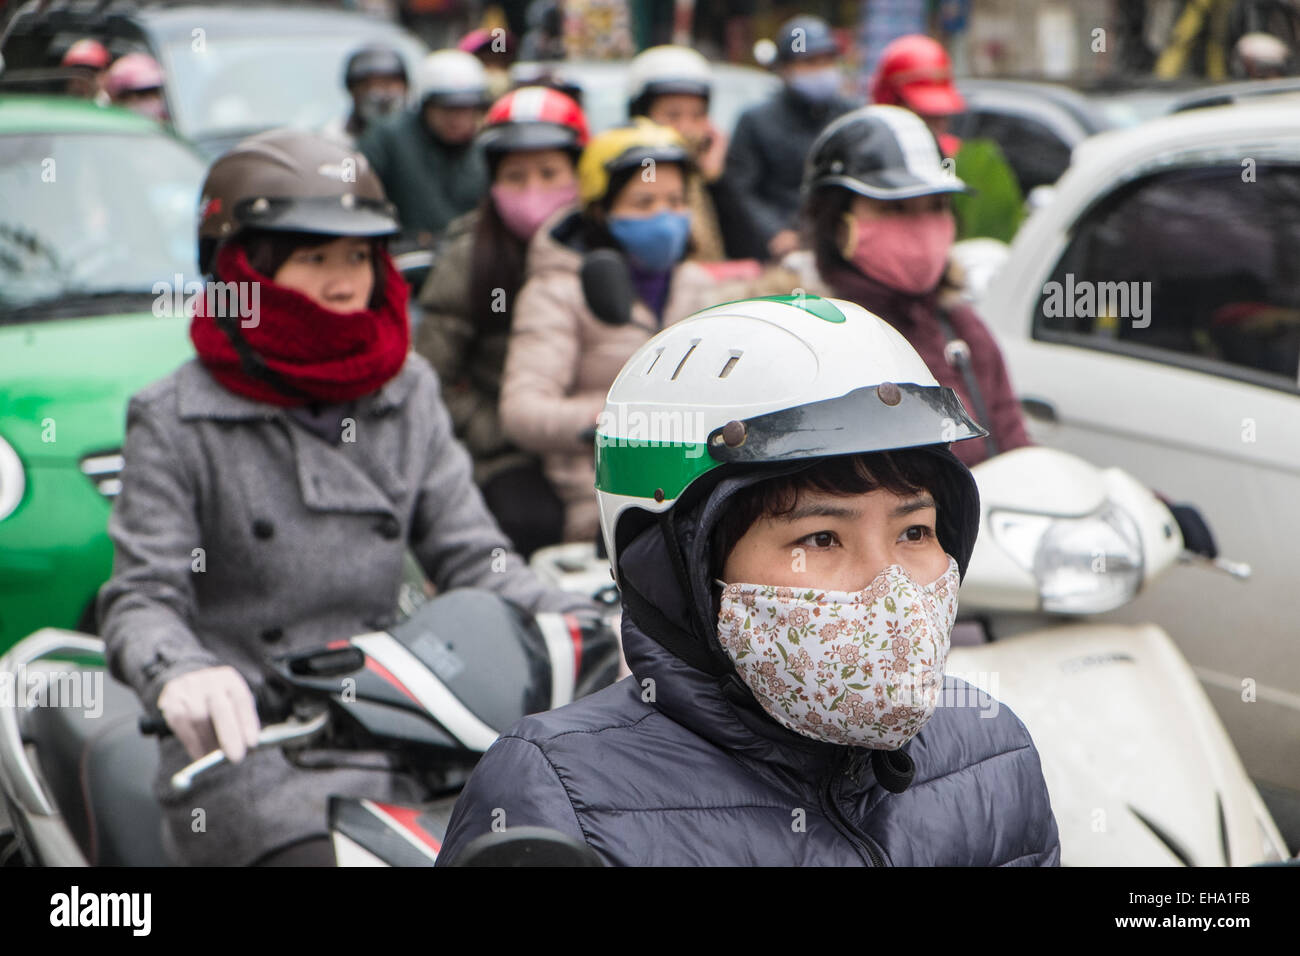 Stock Pollution Photo asian Mask Face Traffic asia face Jam